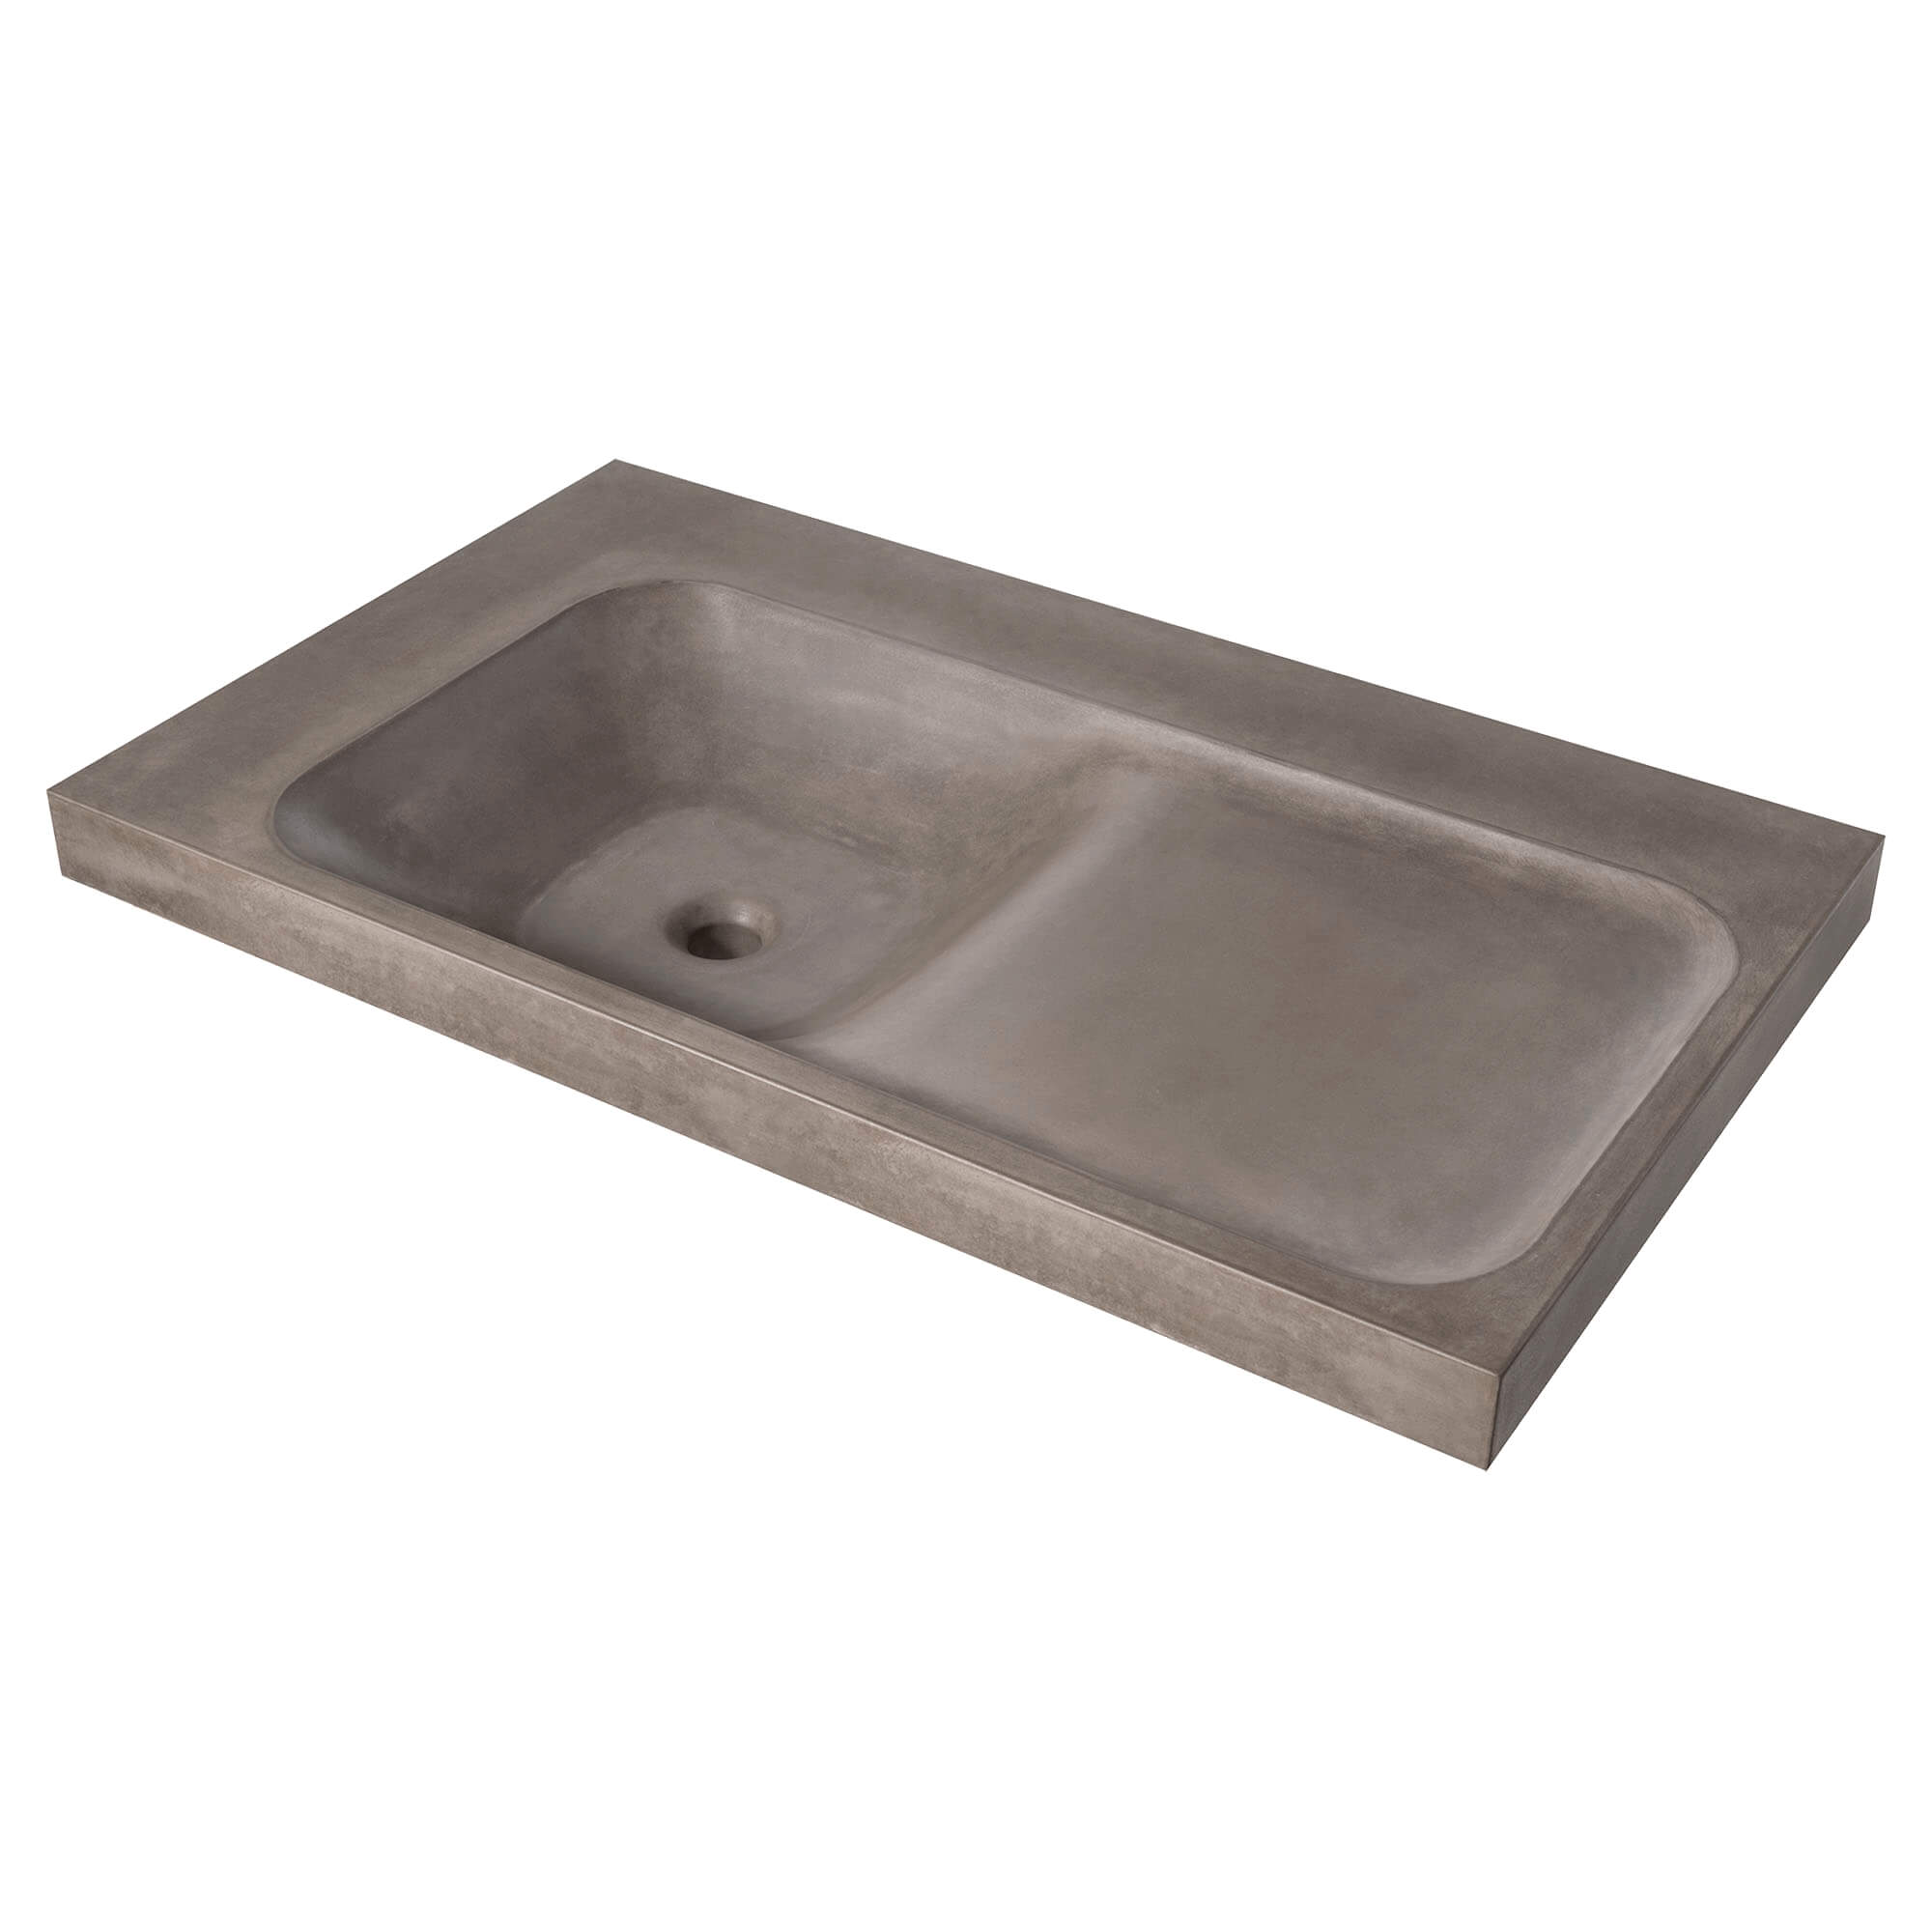 DXV Modulus 36-inch Concrete Bathroom Sink